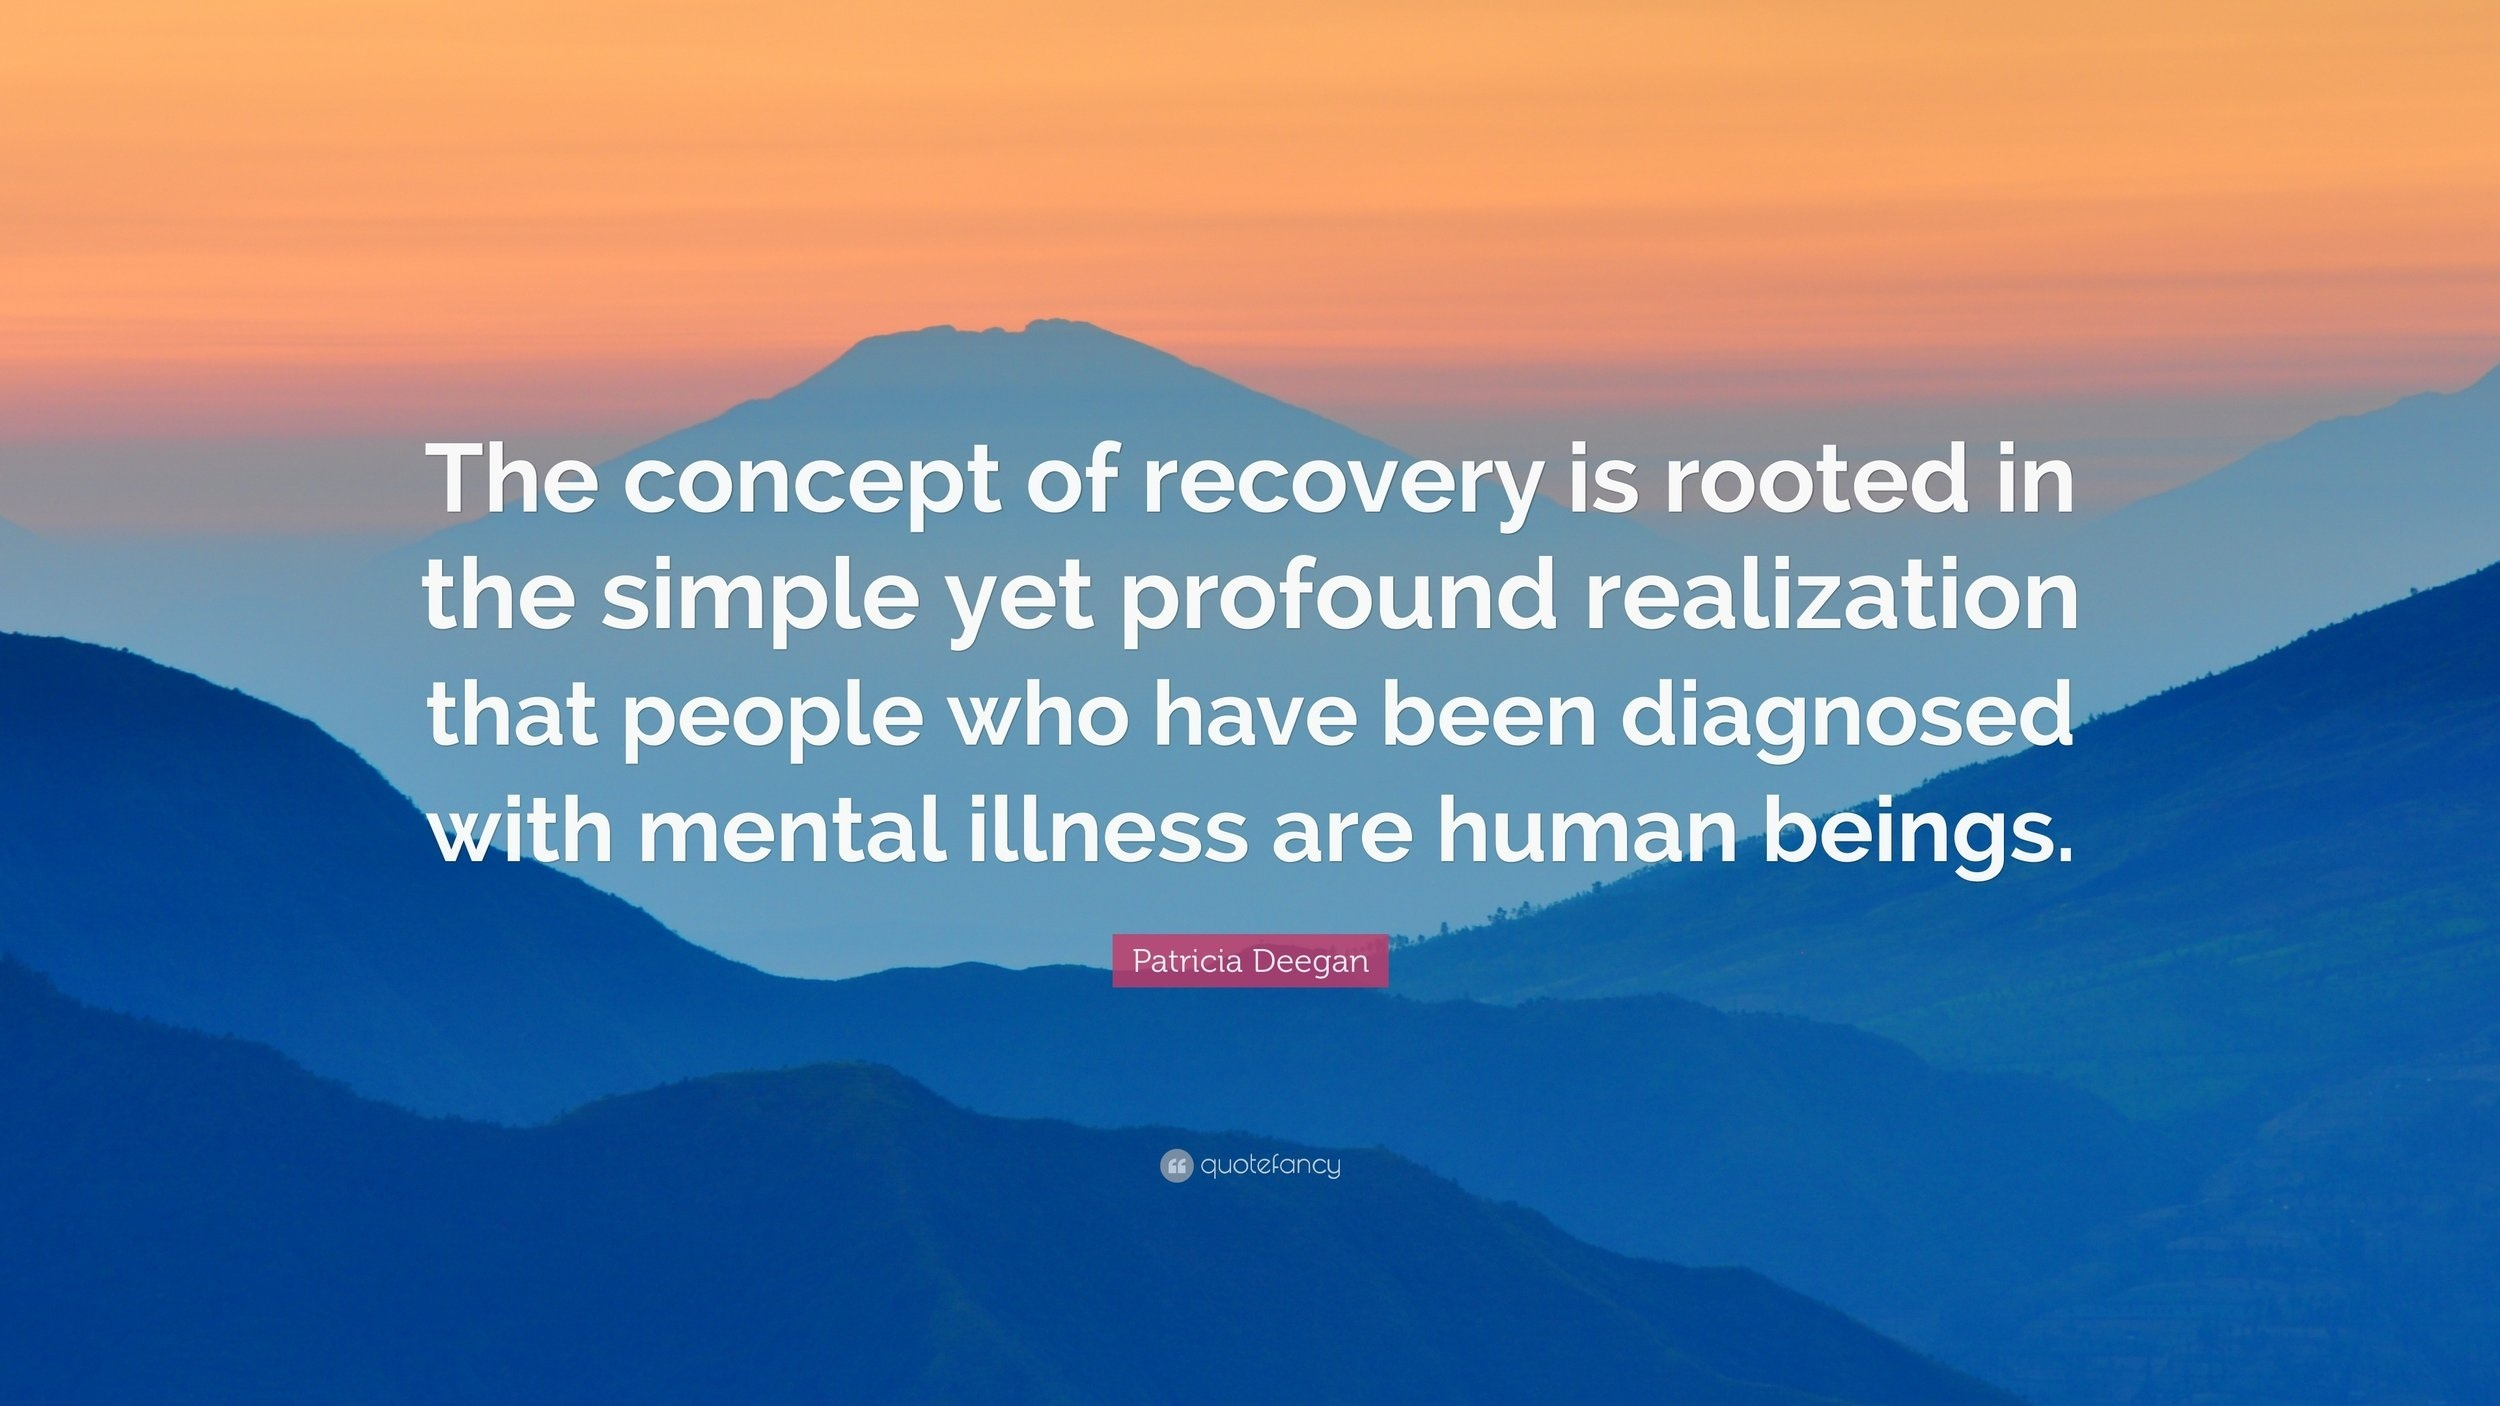 1574410-Patricia-Deegan-Quote-The-concept-of-recovery-is-rooted-in-the.jpg